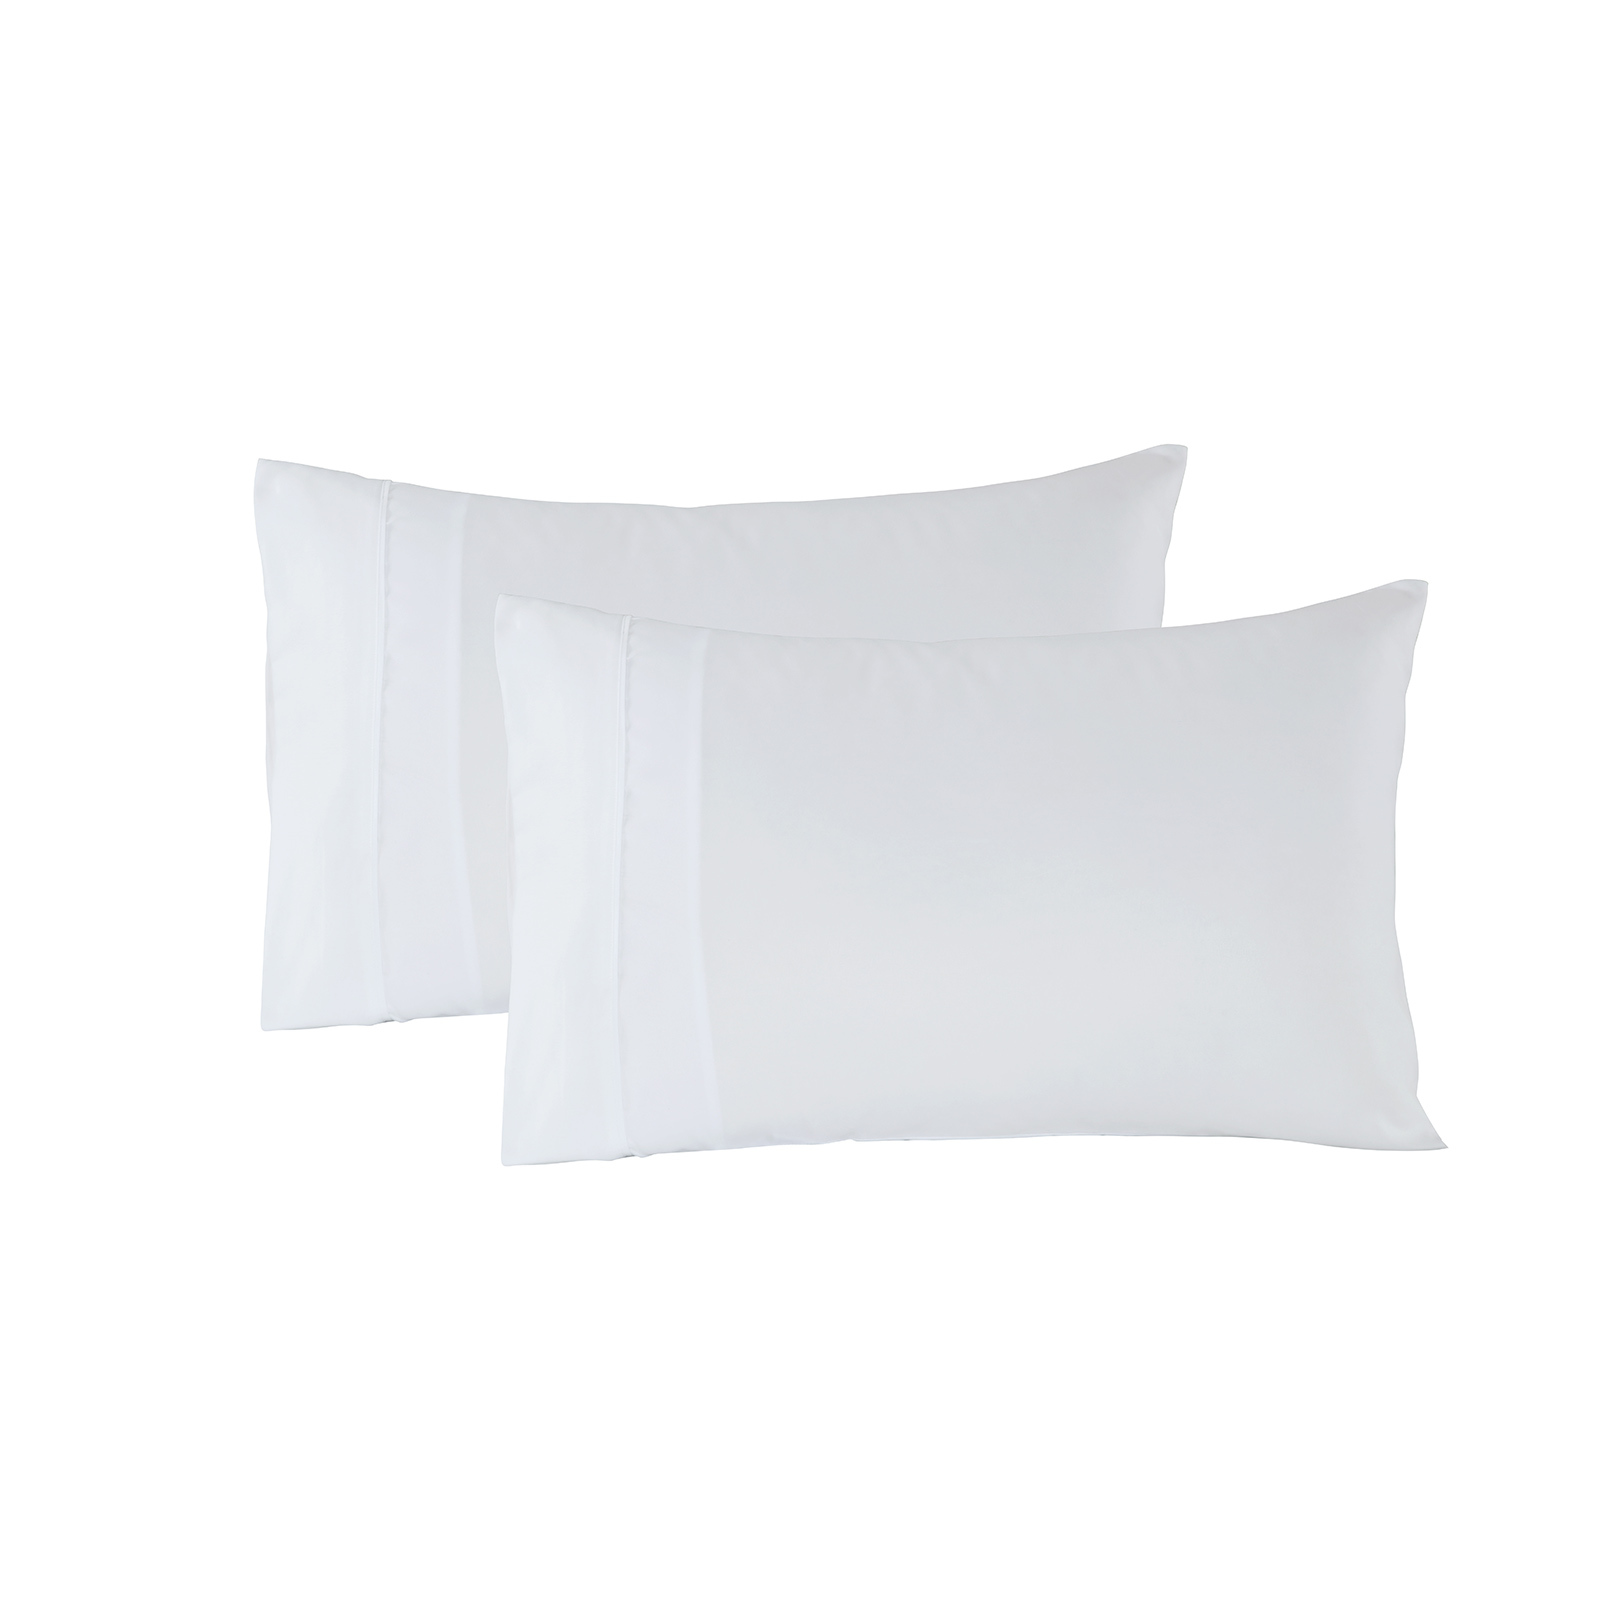 Royal Comfort 1200 Thread Count Ultrasoft 4 Piece Sheet Set - King - White image